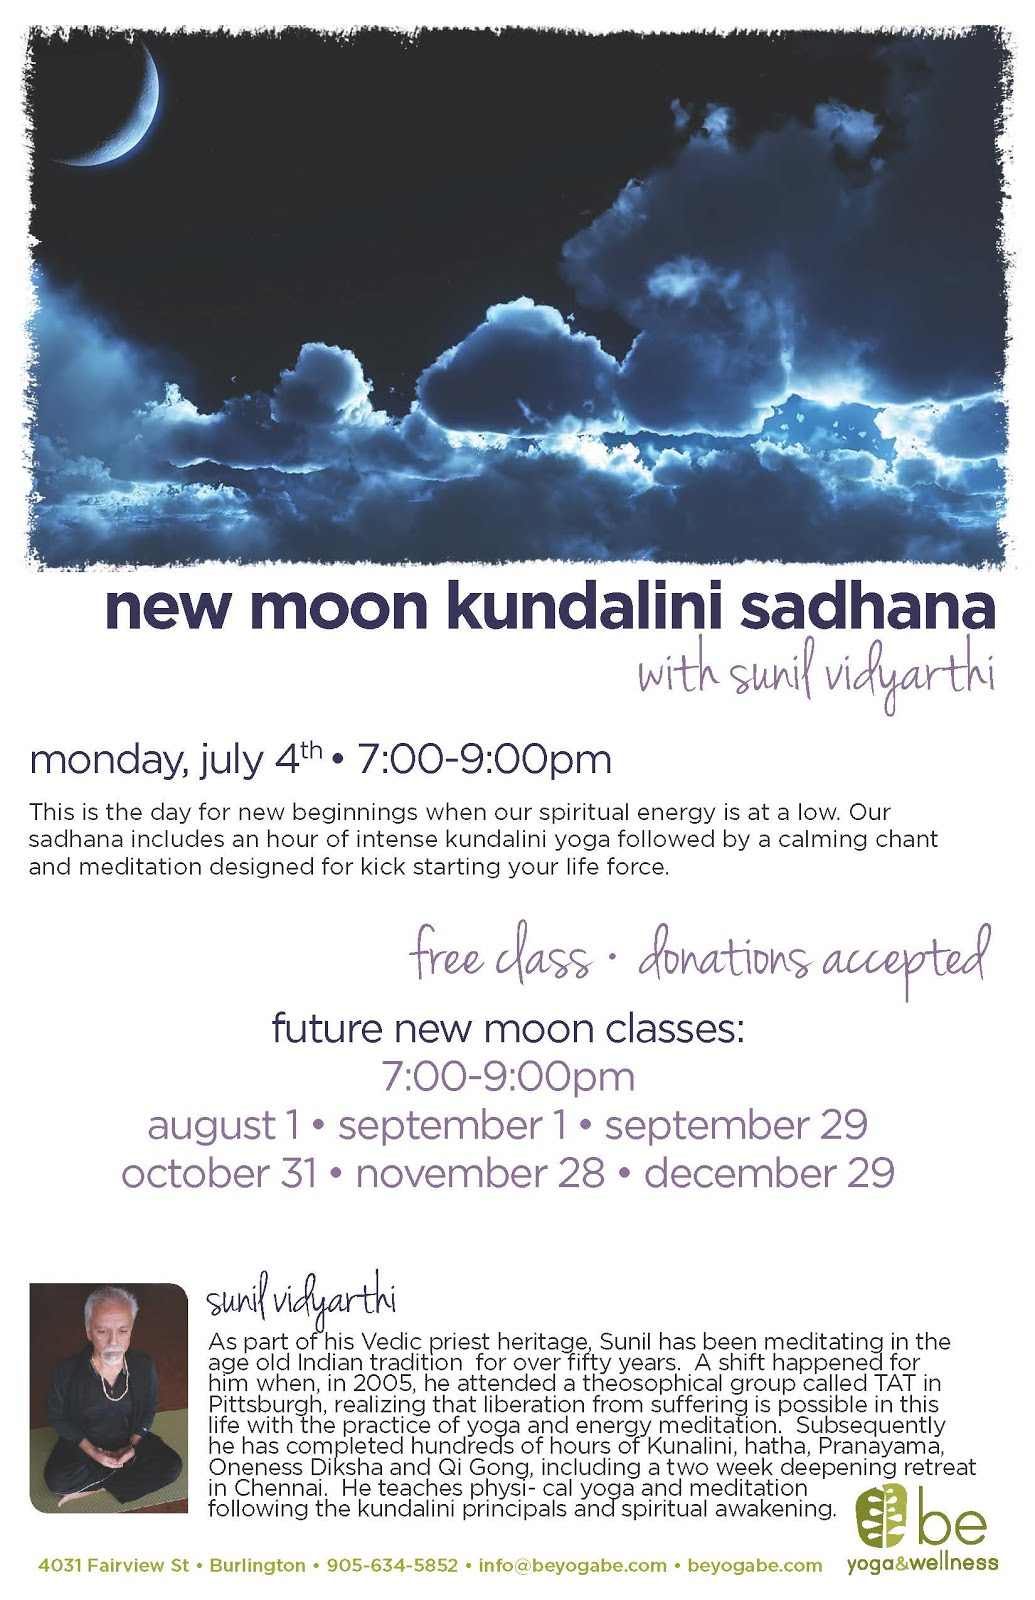 New Moon Sadhana